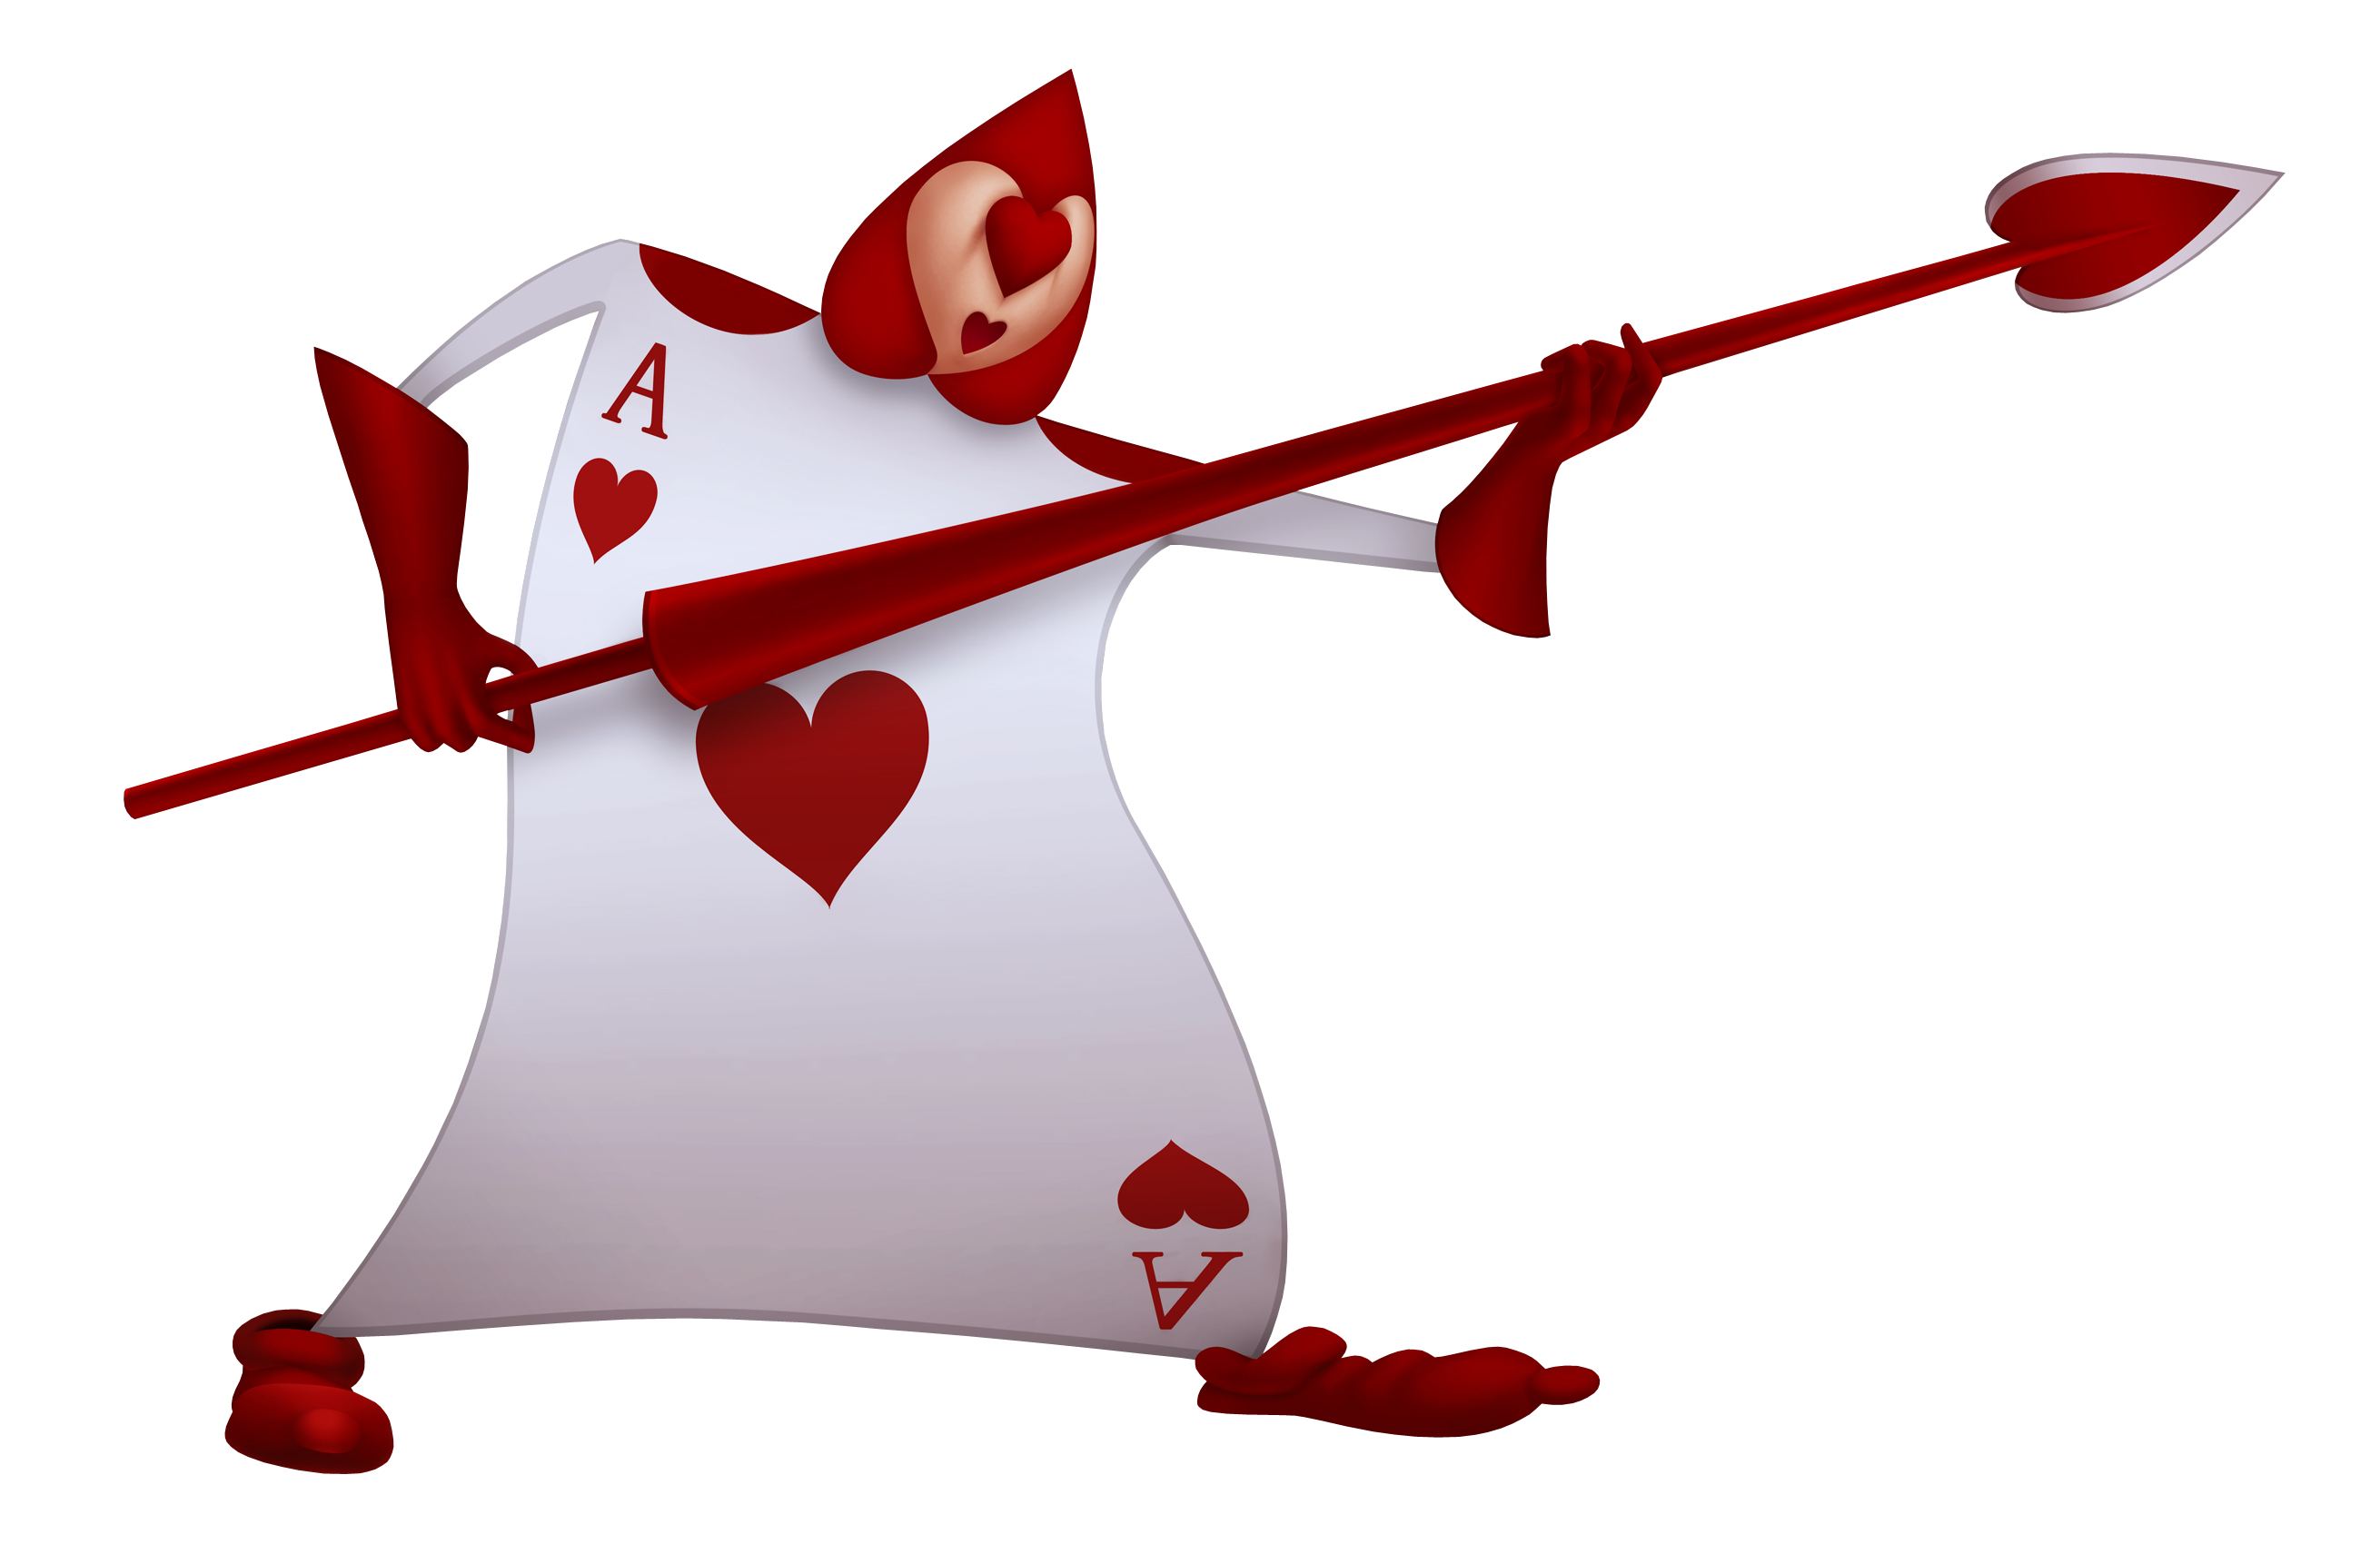 Image card of hearts. Queen clipart staff